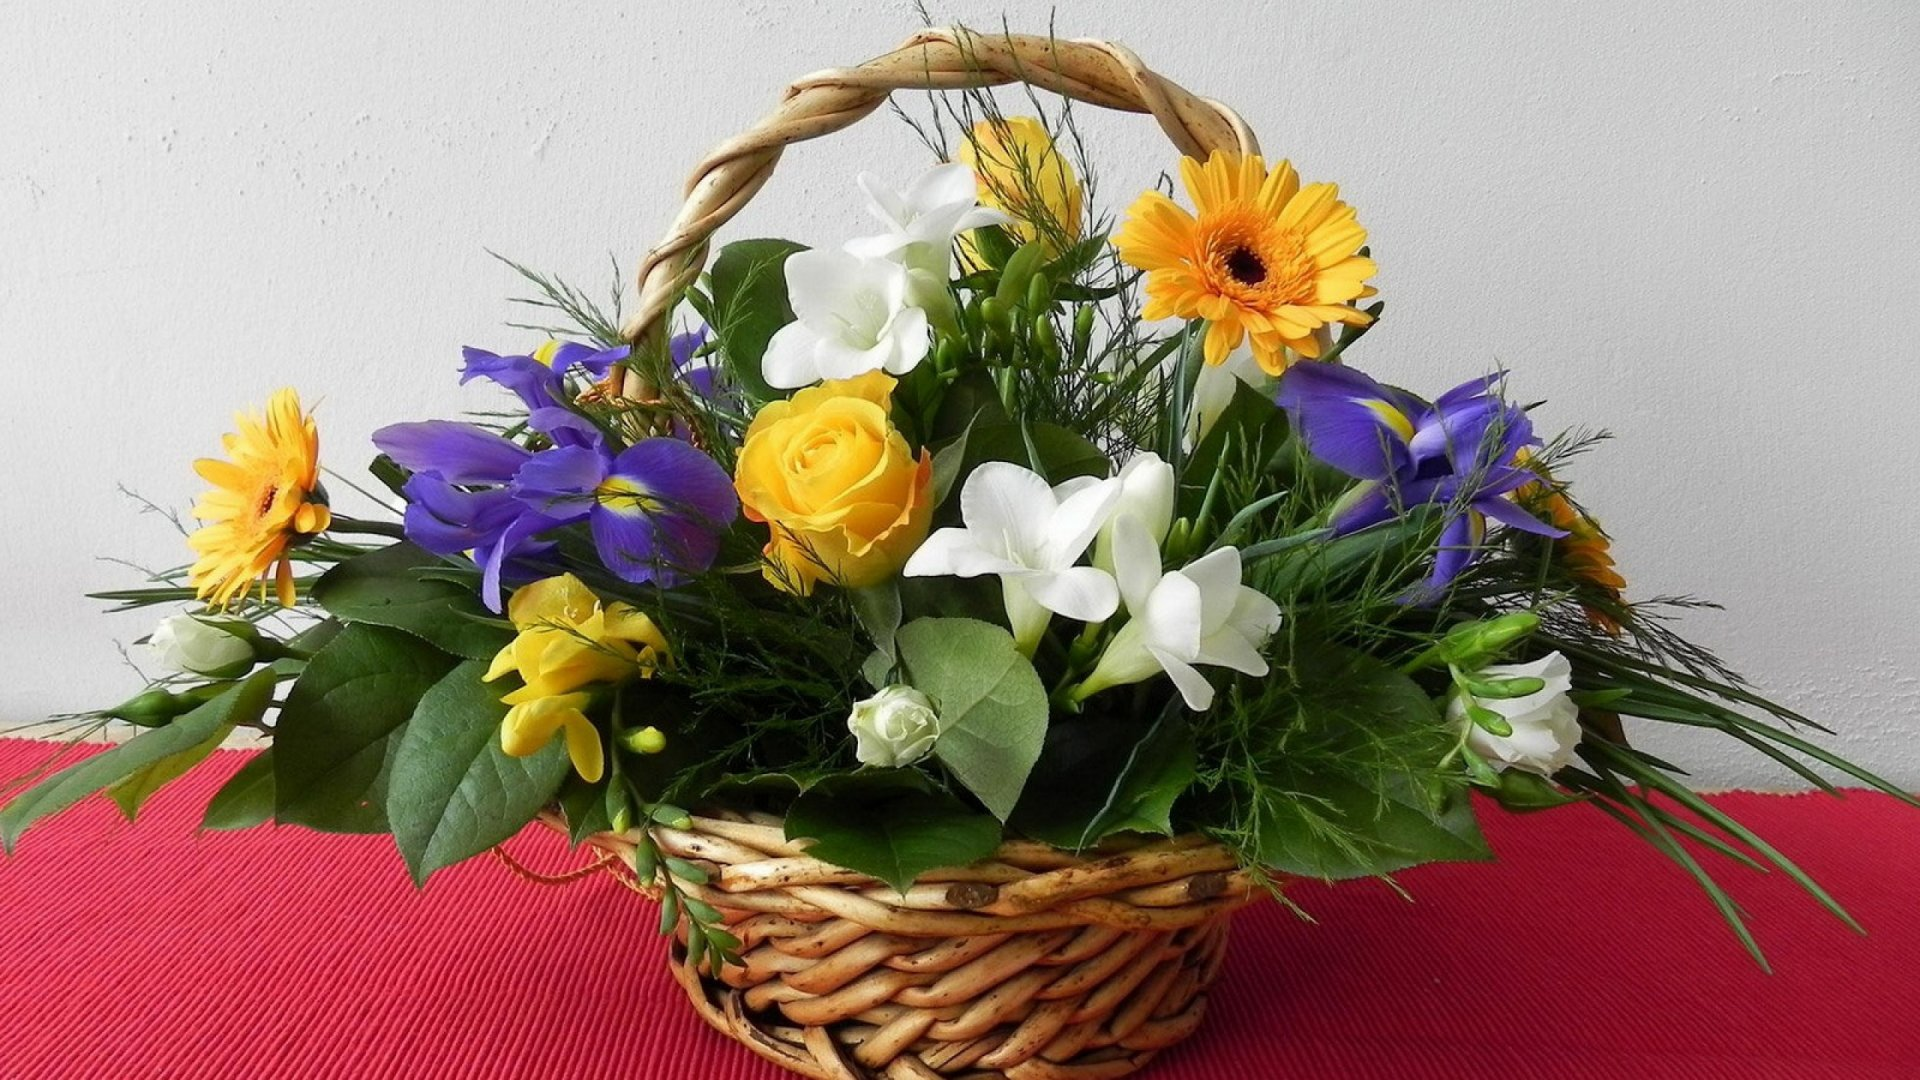 Basket With Flowers wallpaper image